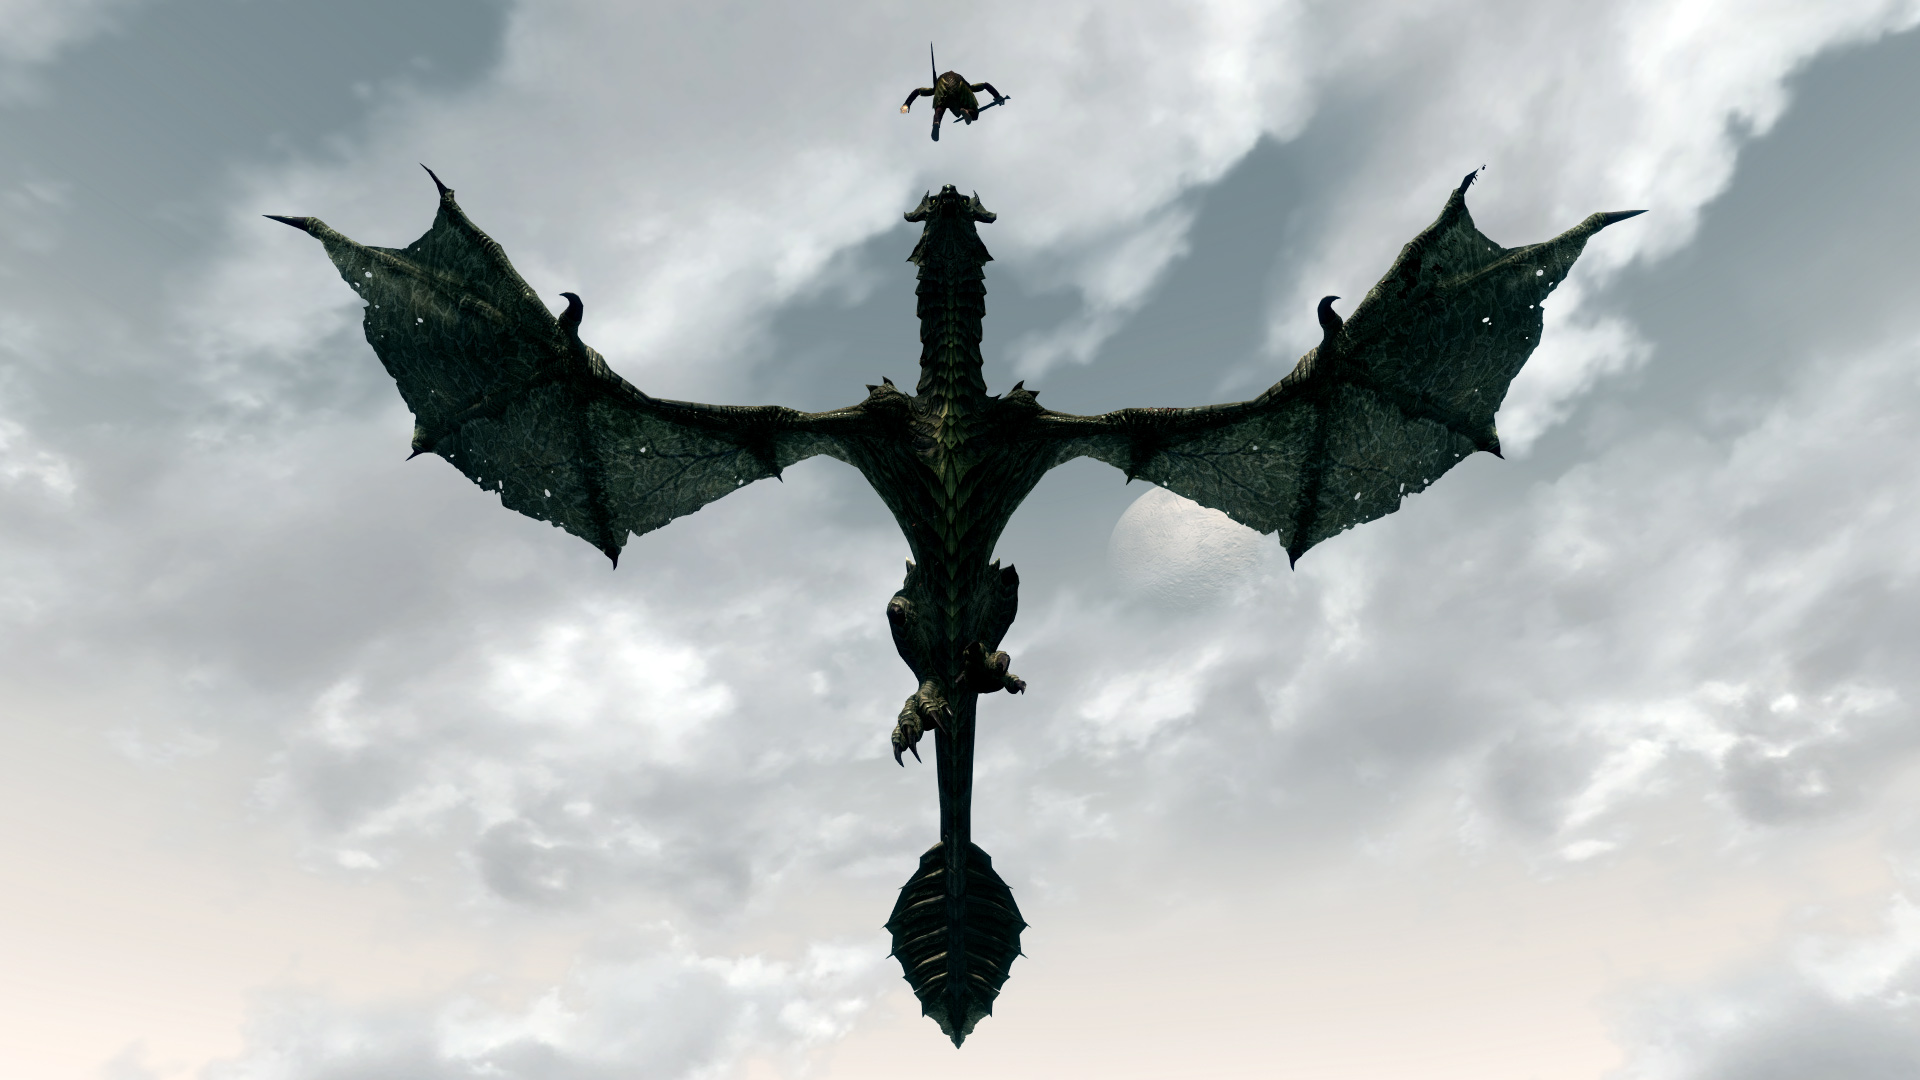 Skyrim Dragon Wallpaper 1080p